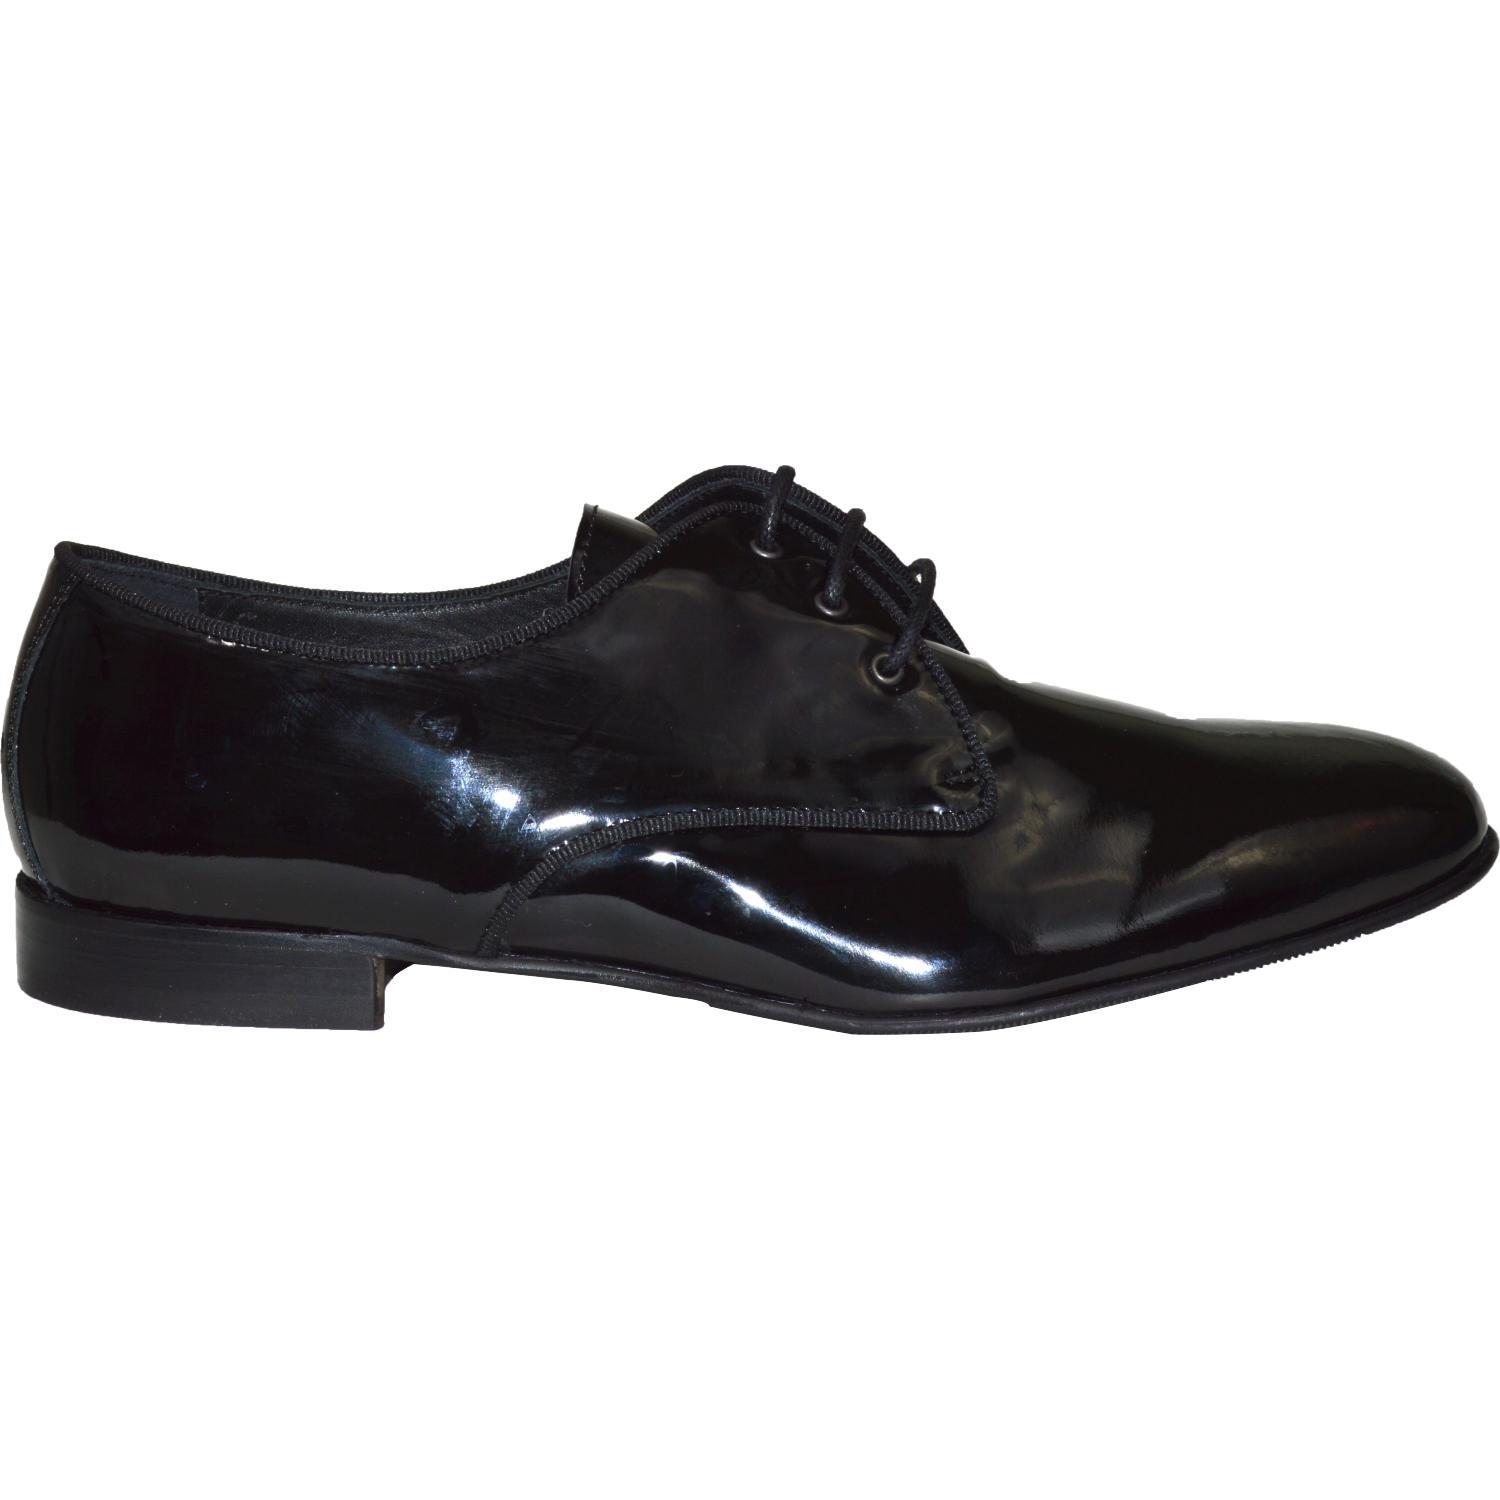 Dakota Dip Dyed Black Leather Oxford Lace Up Shoes | Paolo ...